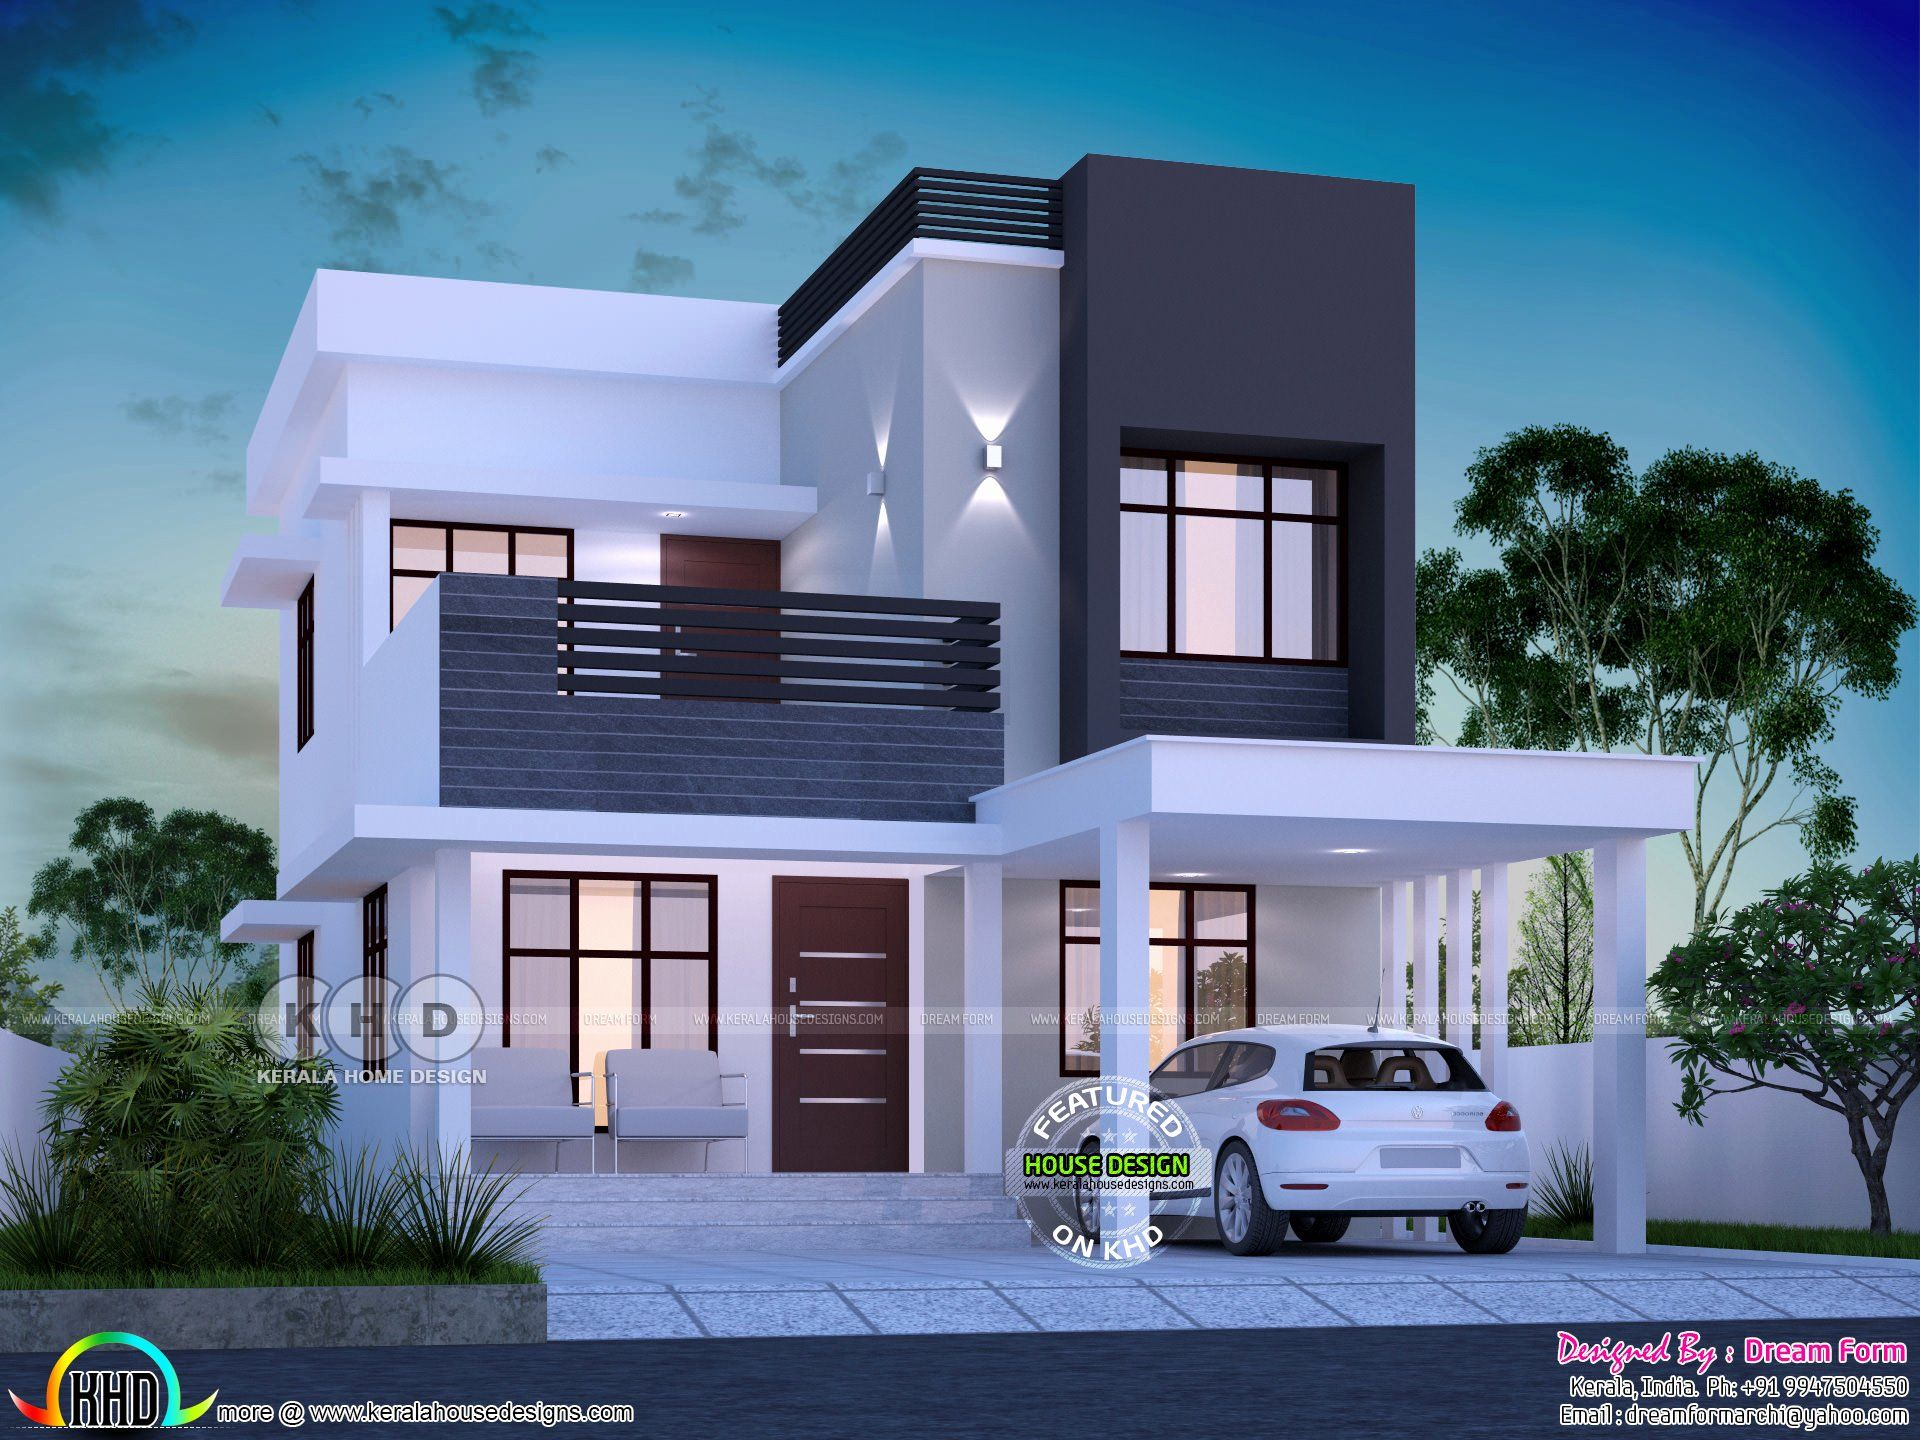 3 Bedroom Contemporary House Plans Fresh 1645 Square Feet 3 Bedroom Modern House Plan In 2020 Modern Small House Design House Designs Exterior Contemporary House Plans